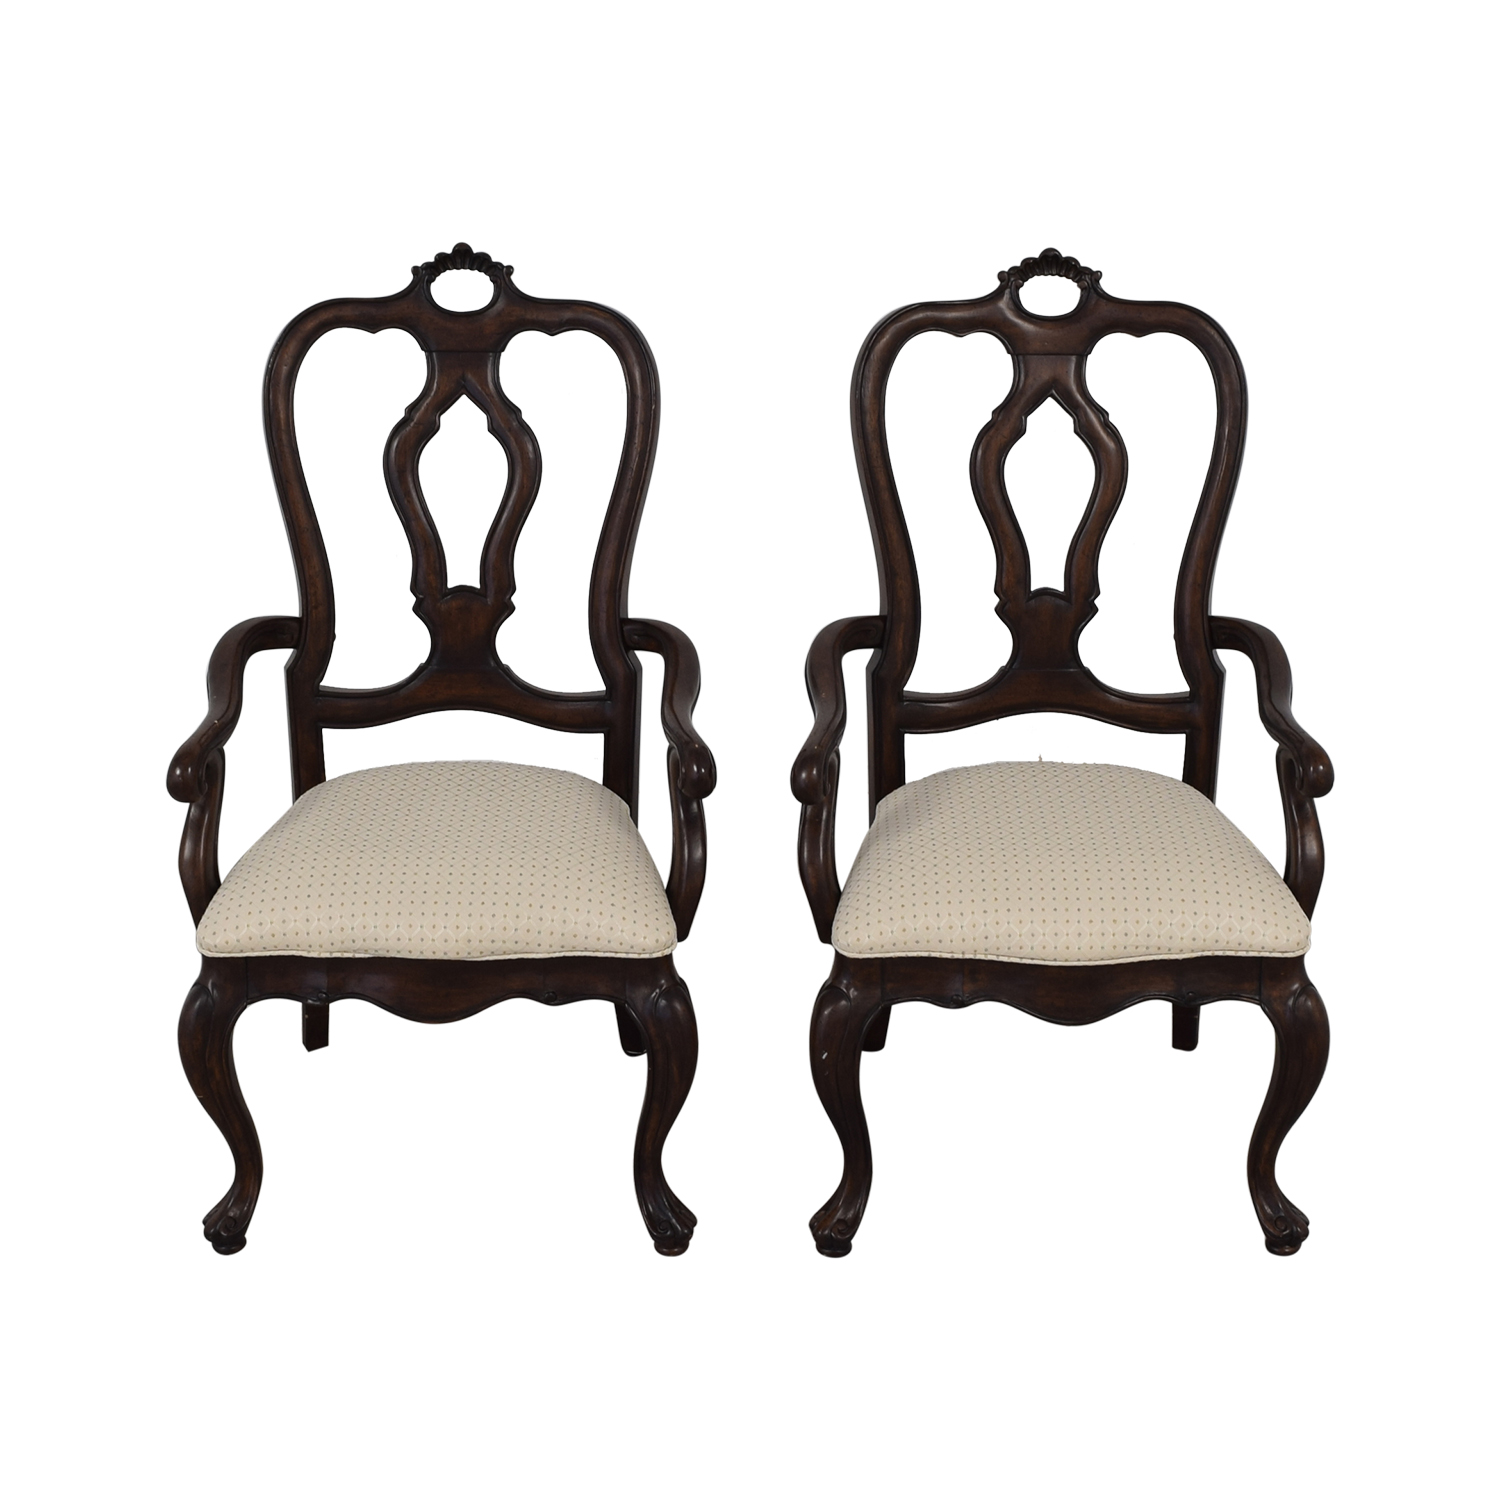 Thomasville Thomasville San Martino Dining Arm Chairs nj